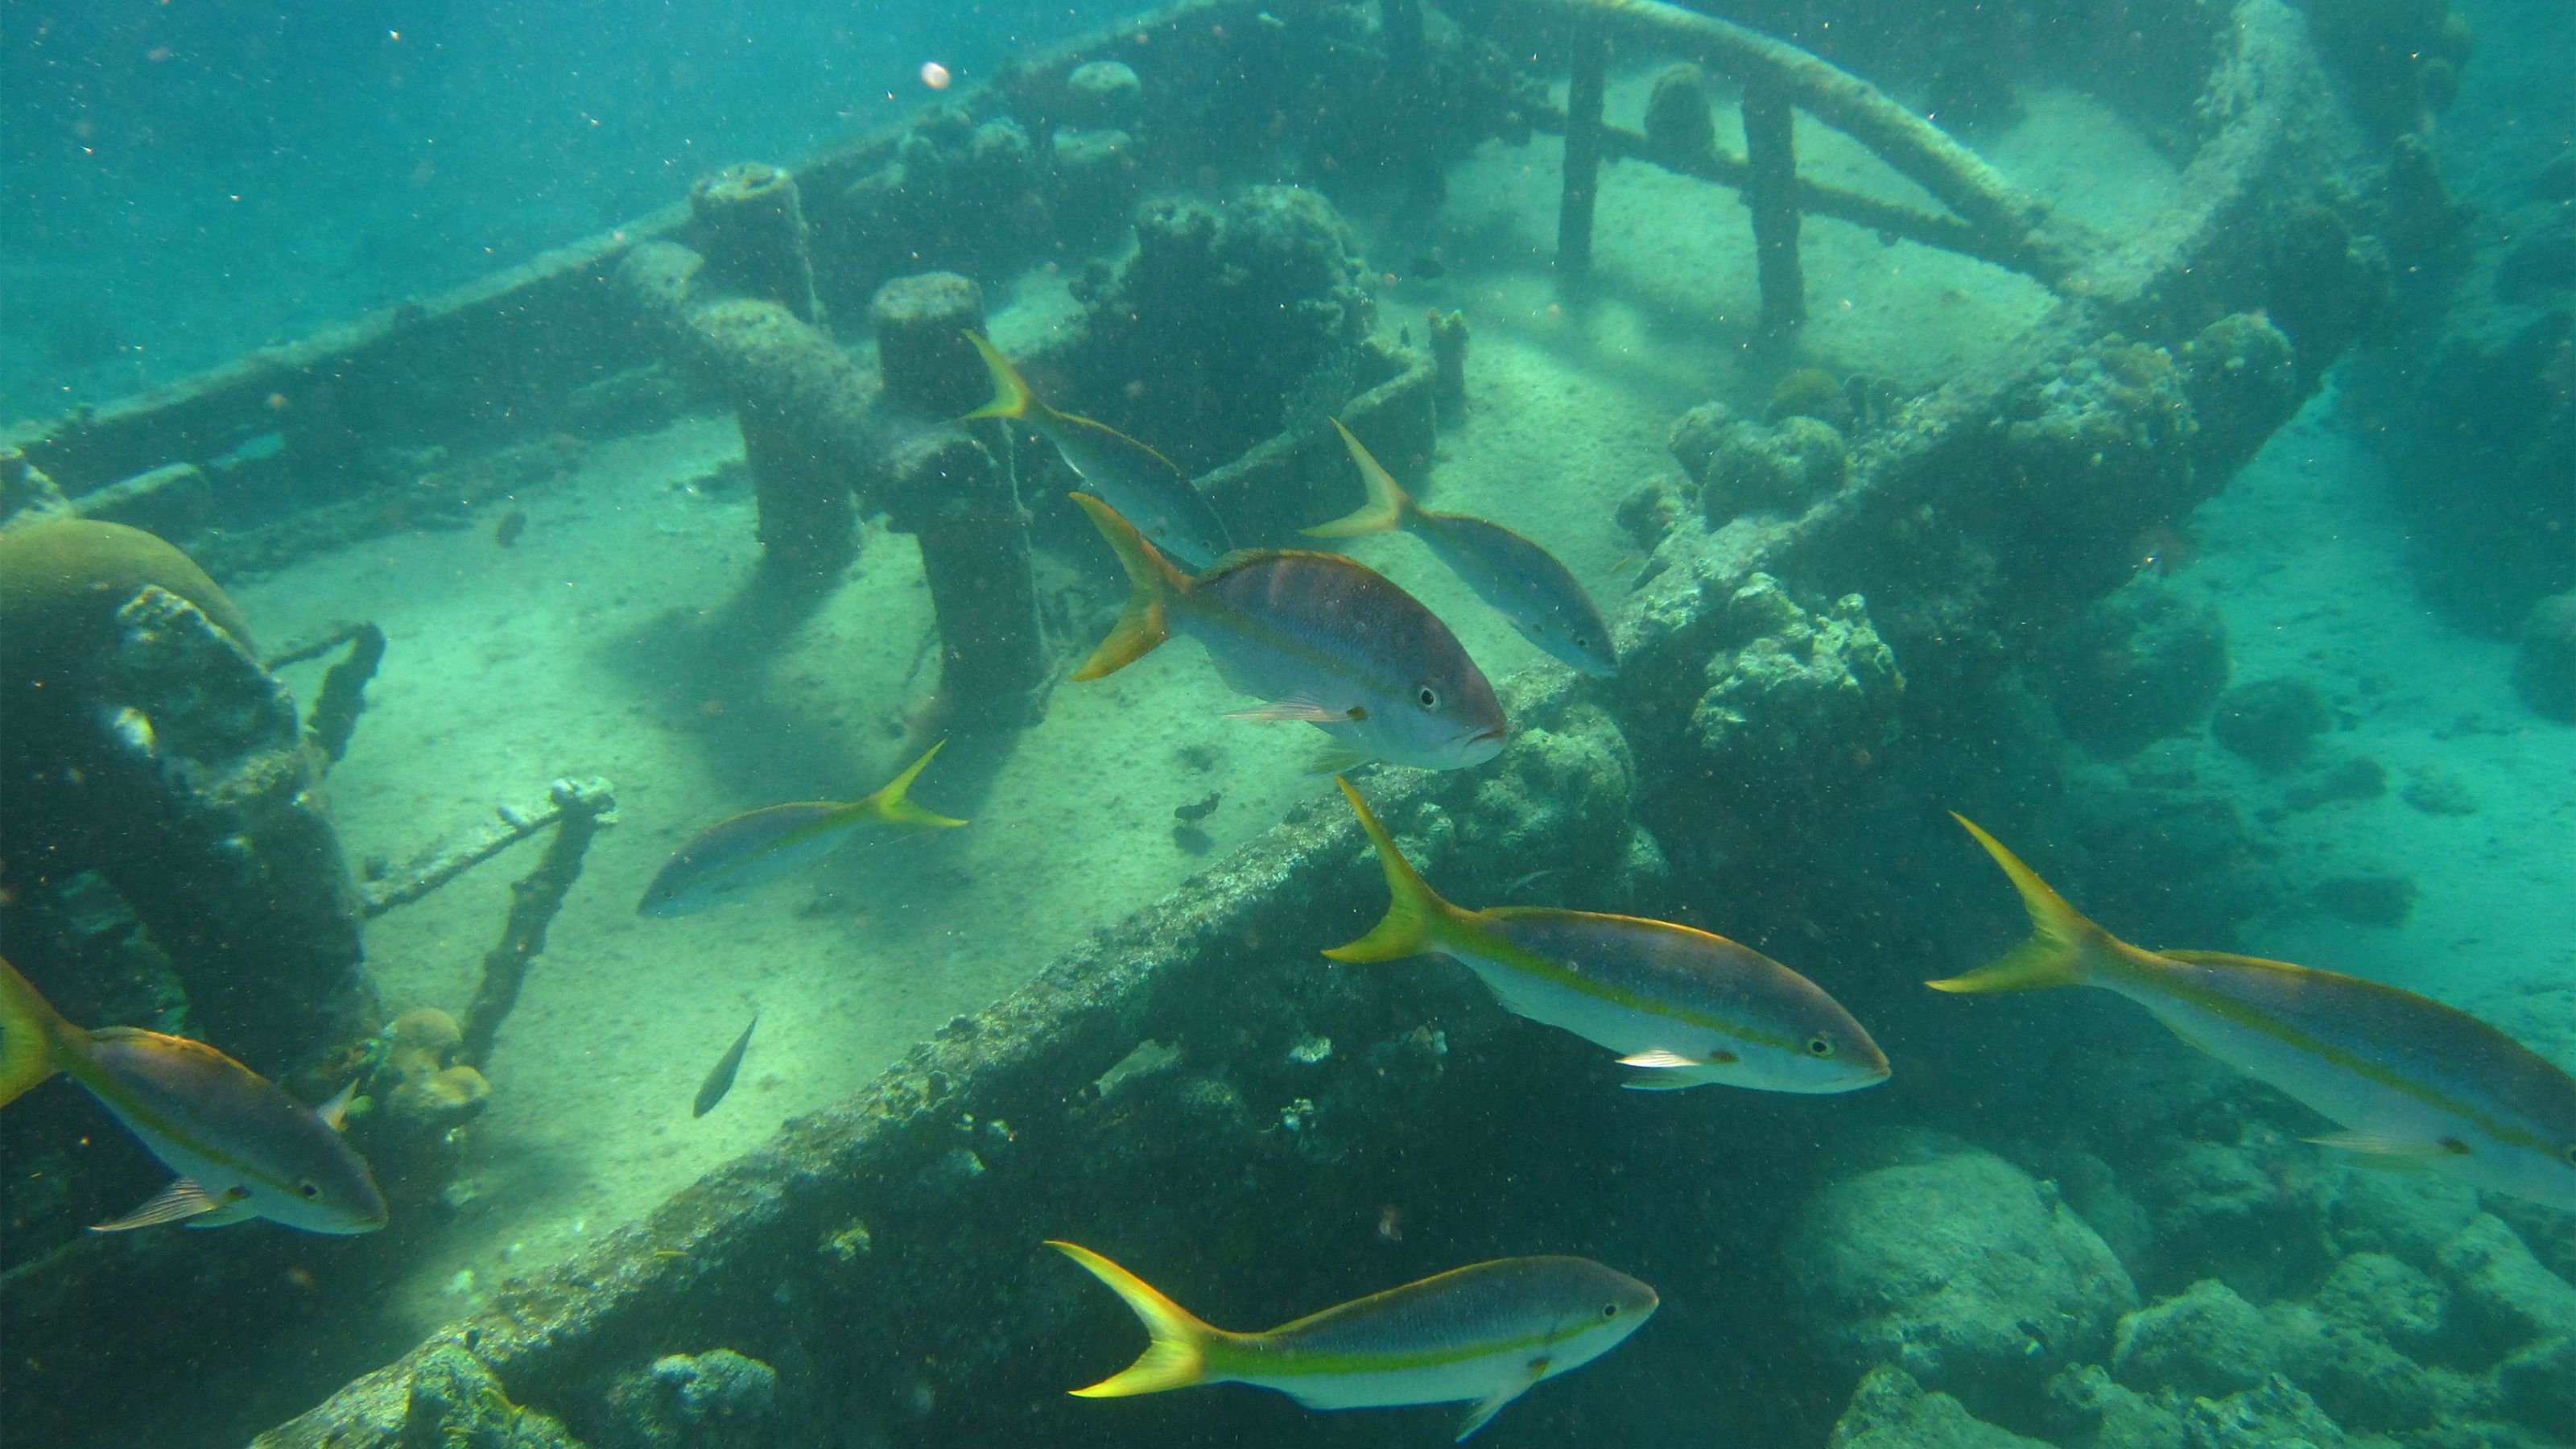 Picturesque sunken tugboat with fish swimming by in Curacao